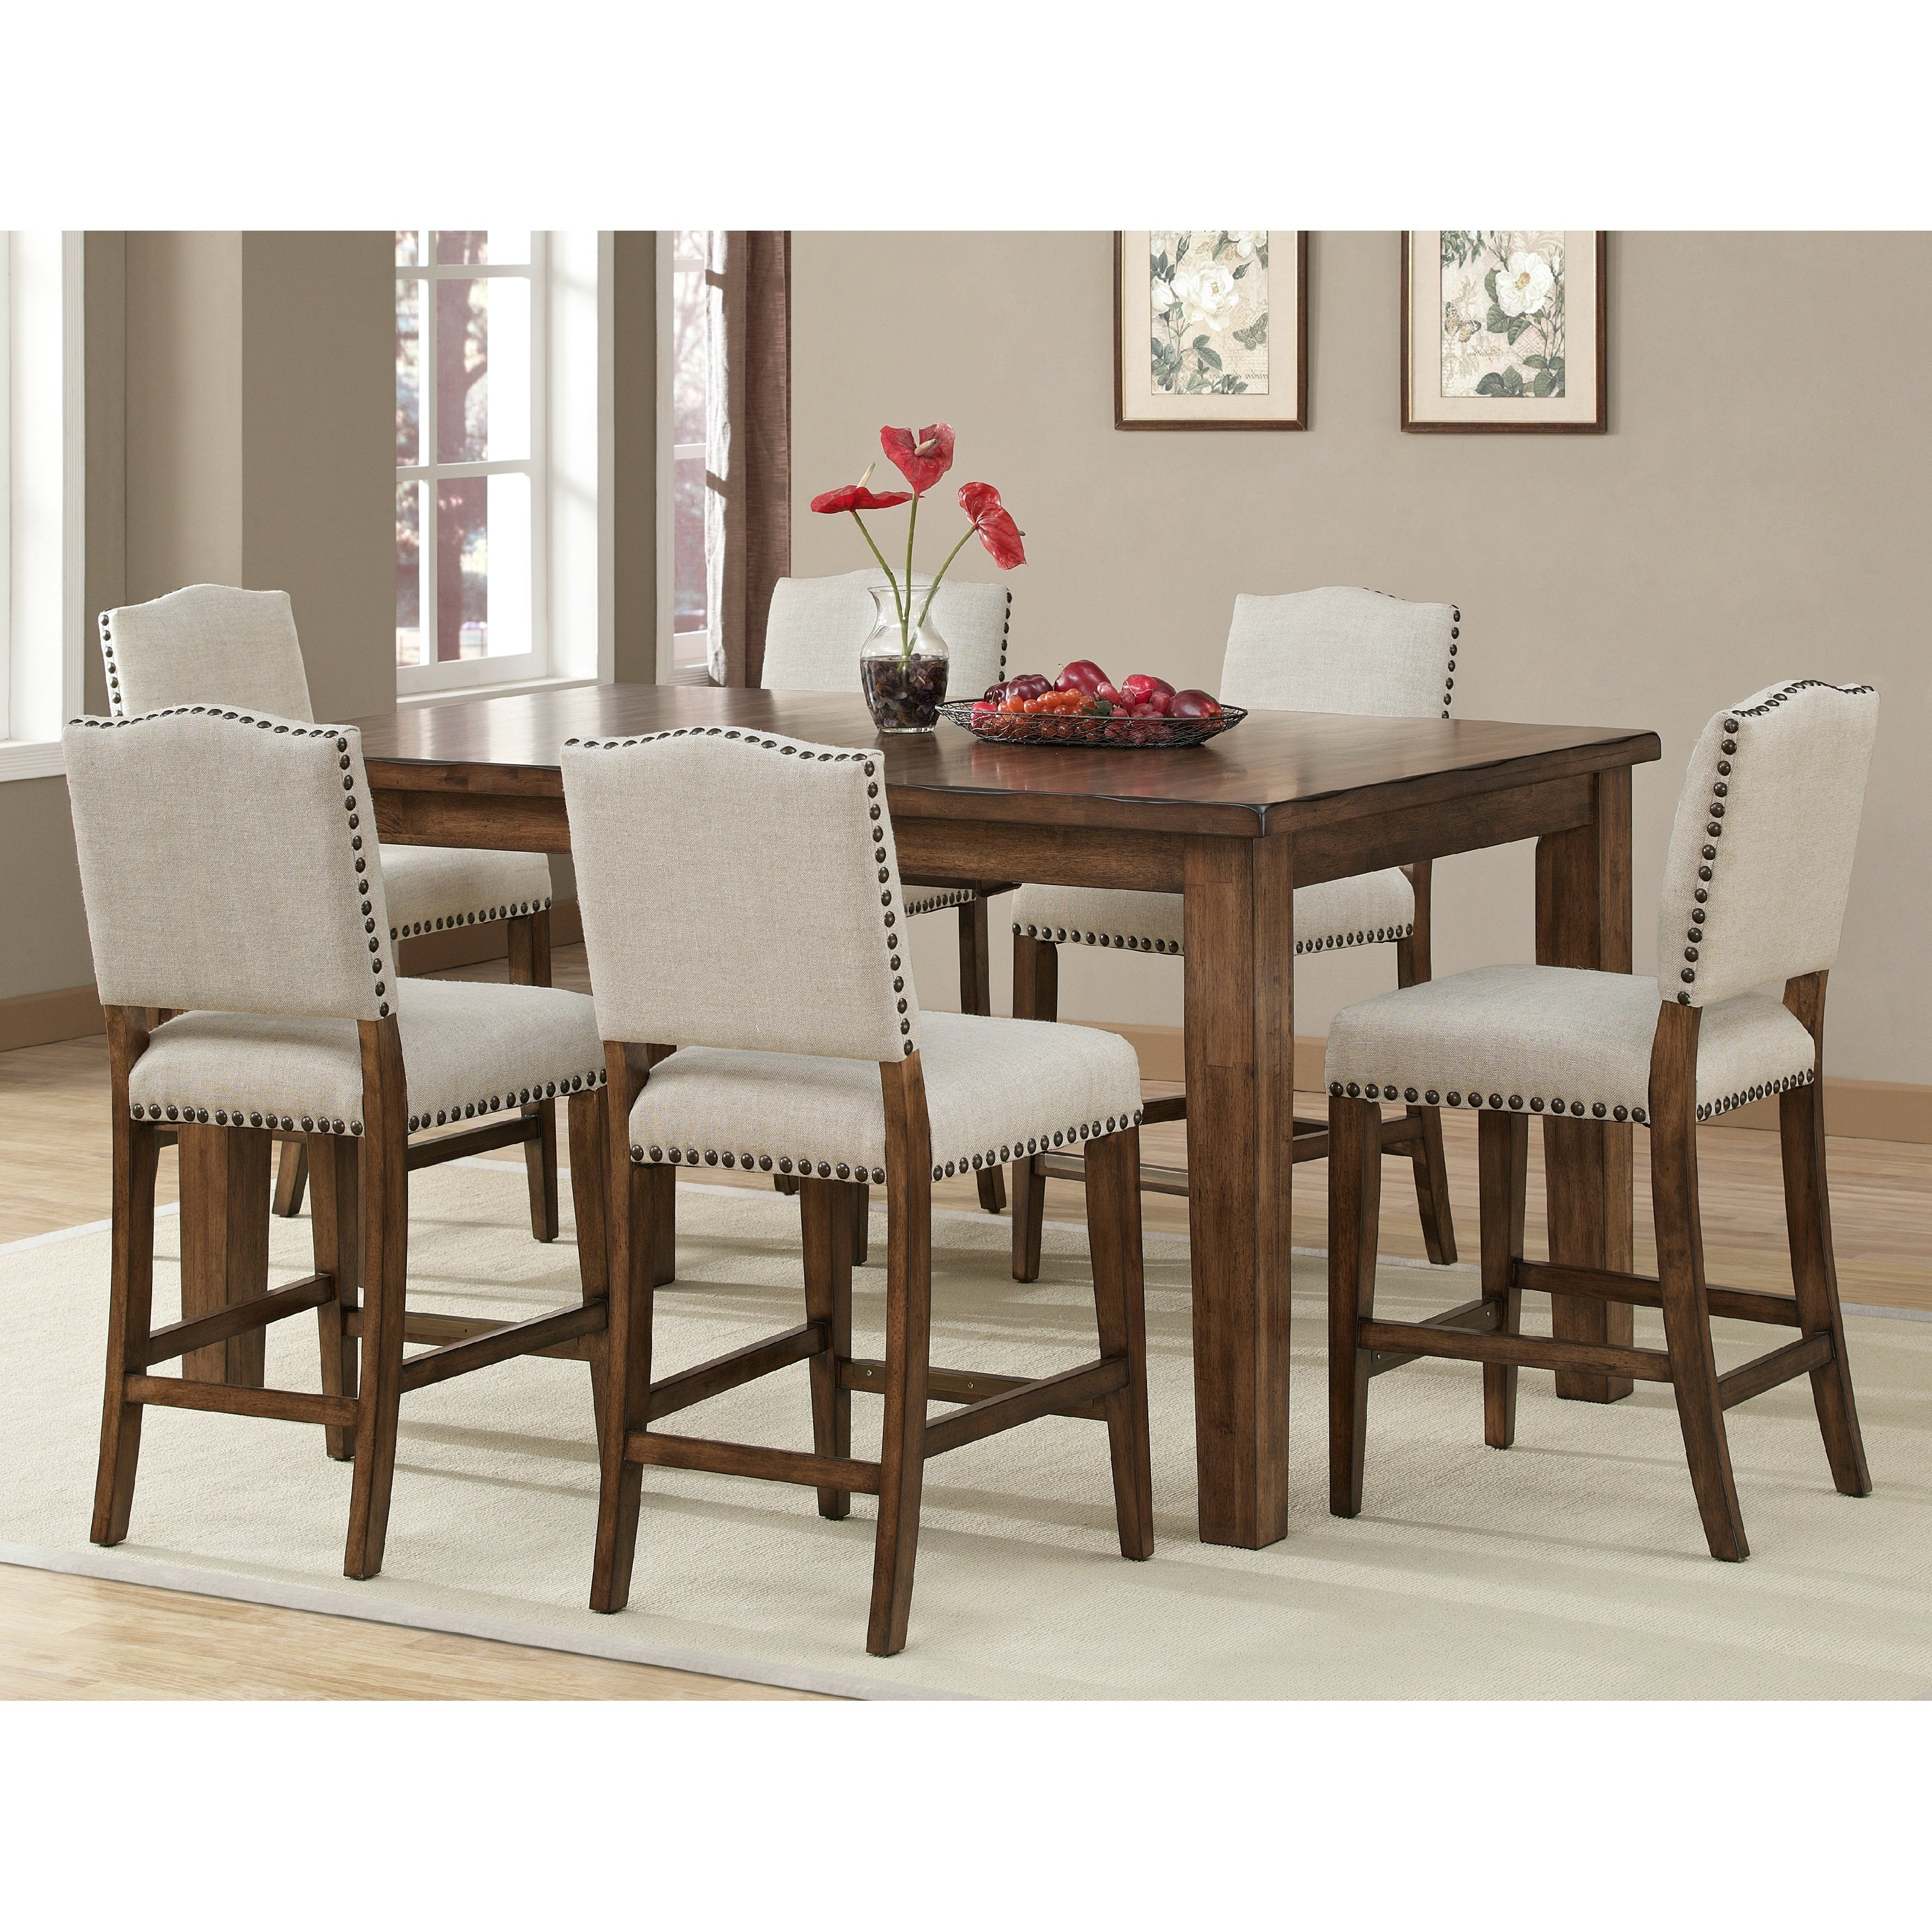 Preferred Jaxon 5 Piece Extension Round Dining Sets With Wood Chairs With Ahb Cameo Counter Height Dining Table In Coastal Grey (Gallery 21 of 25)